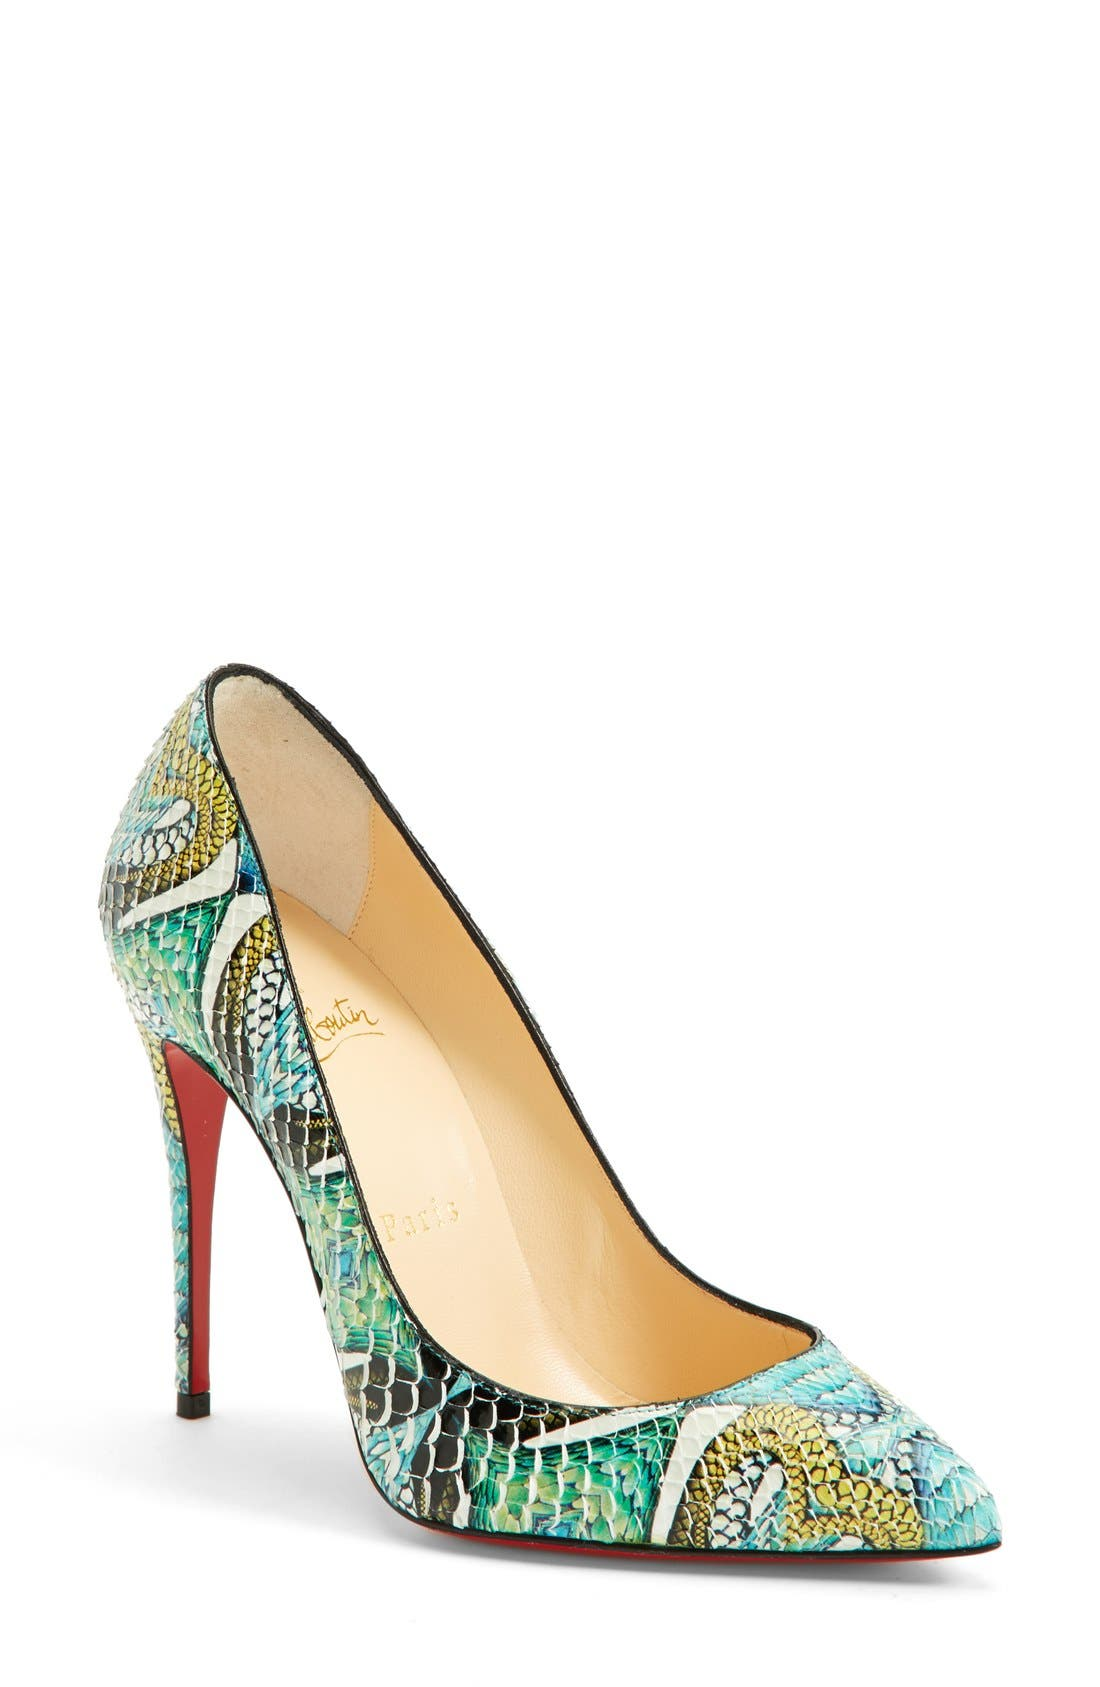 Alternate Image 1 Selected - Christian Louboutin 'Pigalle' Hand Painted Genuine Python Pointy Toe Pump